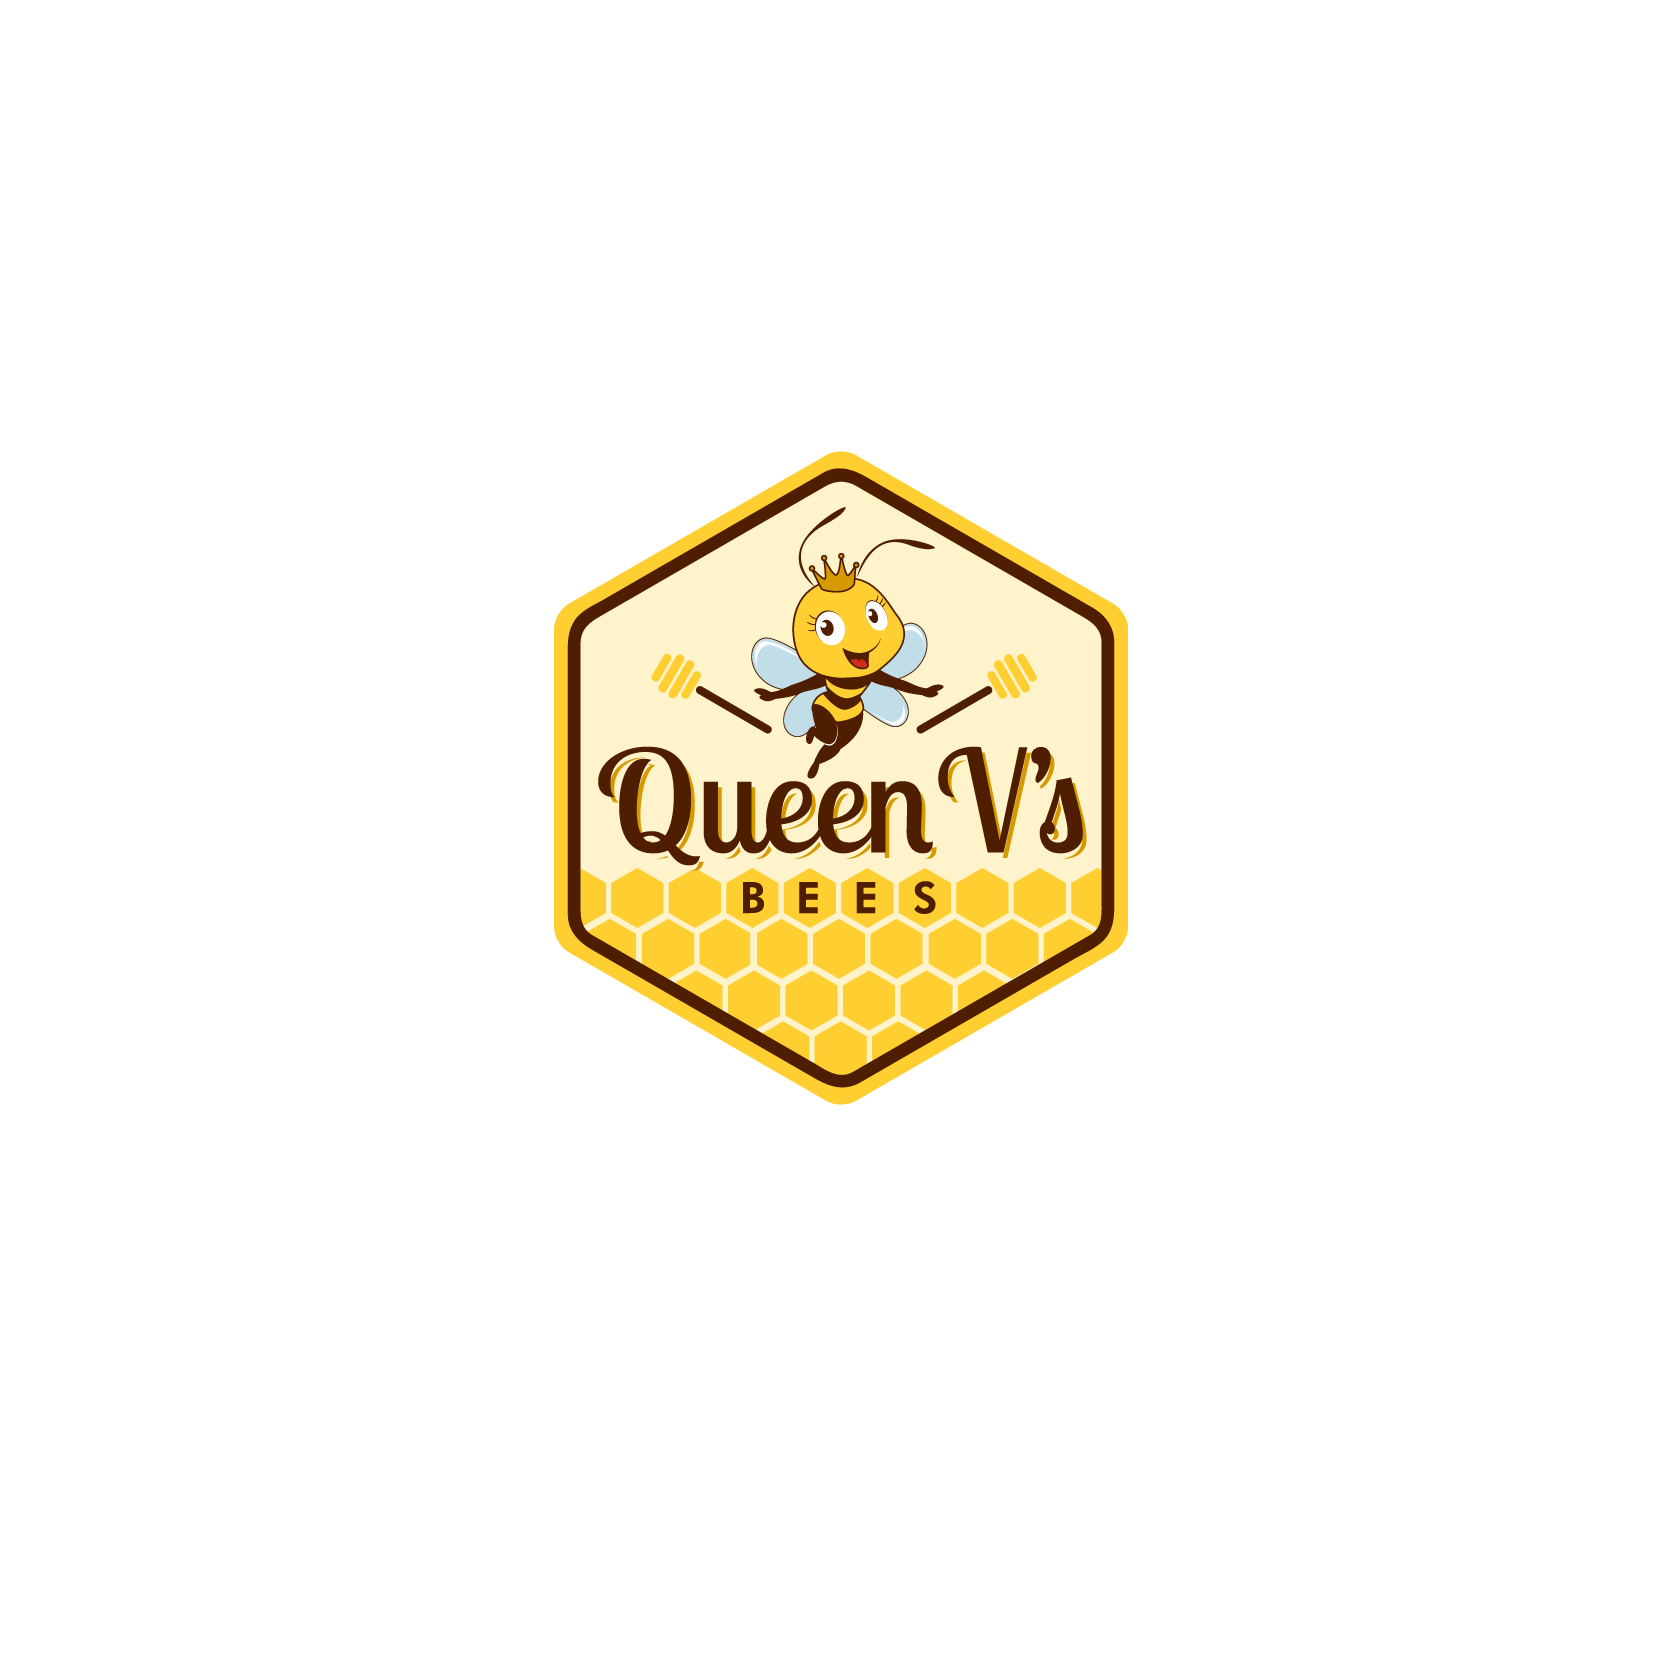 Our honey is sweet and we need a sweet logo